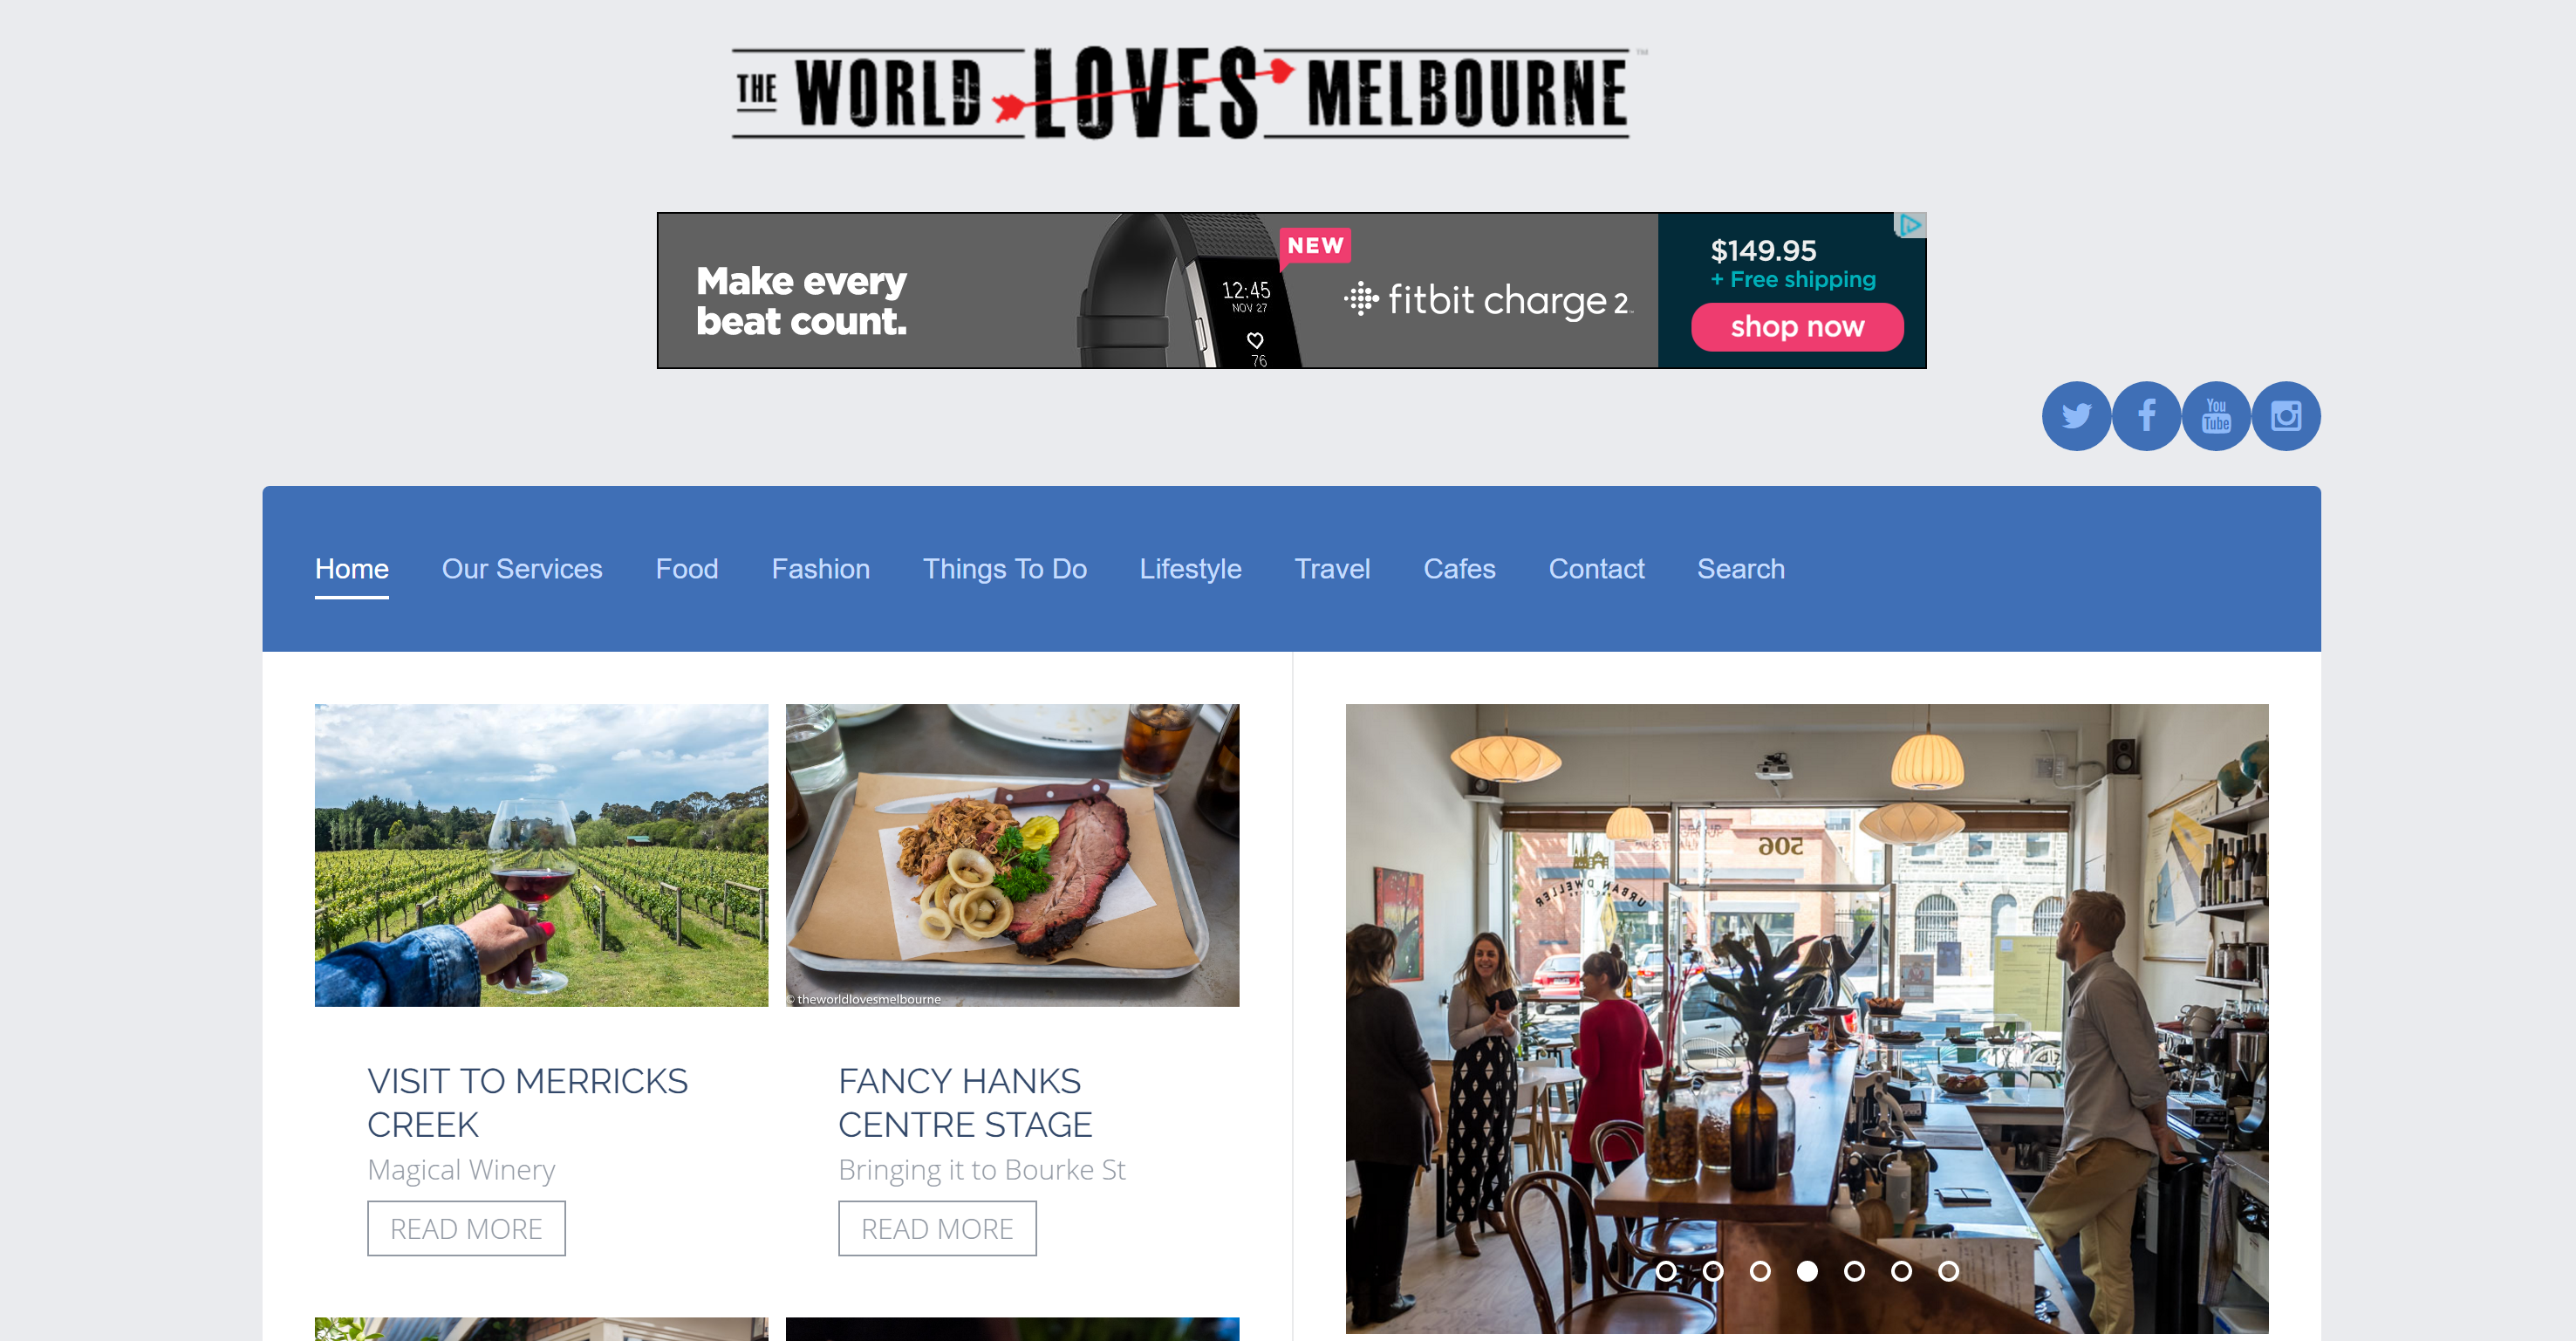 The World Loves Melbourne logo